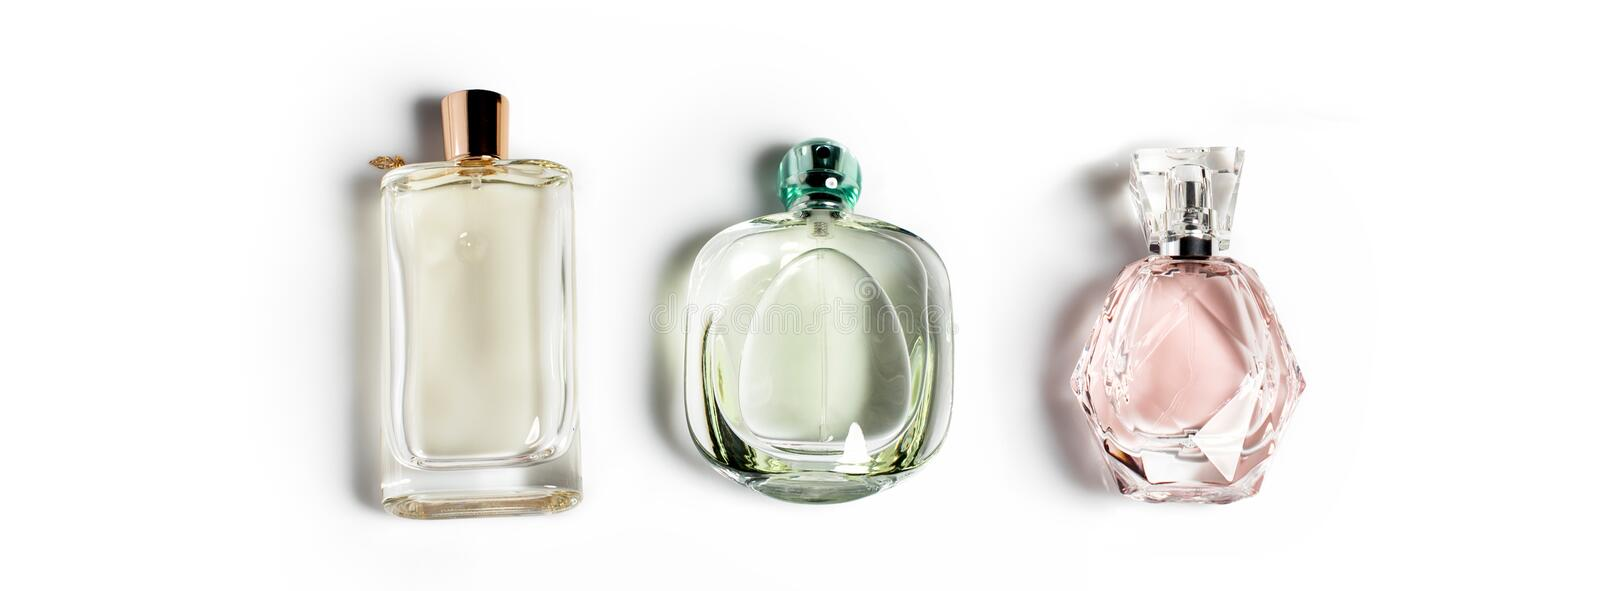 Perfume bottles on light background. Perfumery, cosmetics, fragrance collection. Banner for website. Perfume bottles on light background. Perfumery, cosmetics royalty free stock images